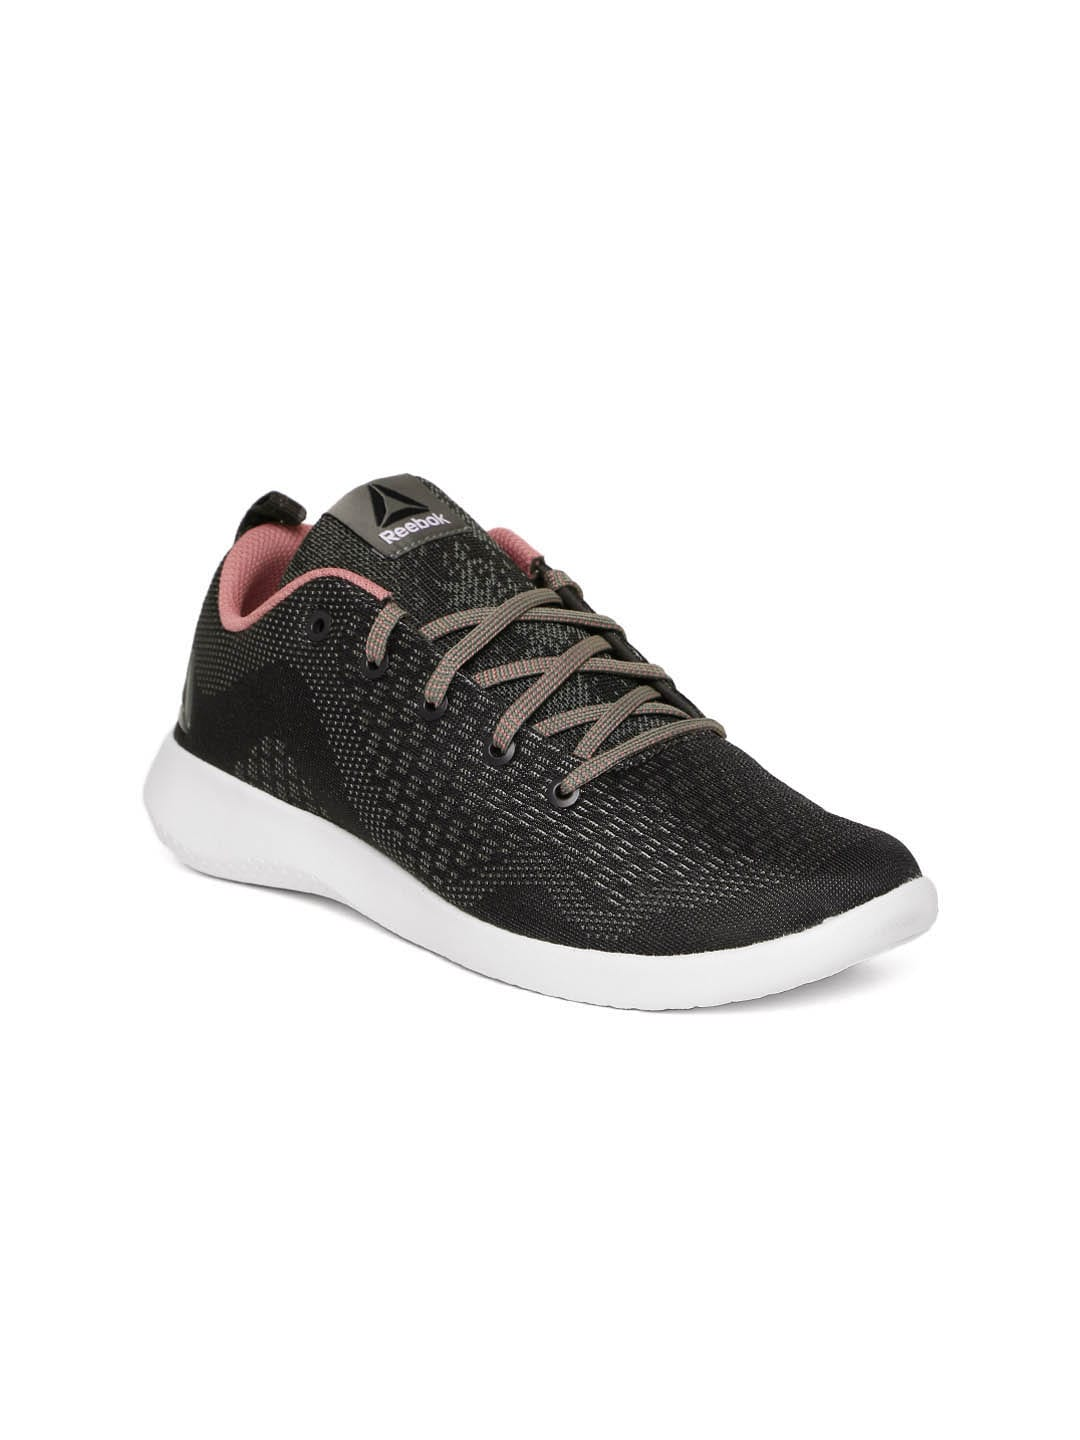 Reebok Black Shoes - Buy Reebok Black Shoes Online in India a9b87925d